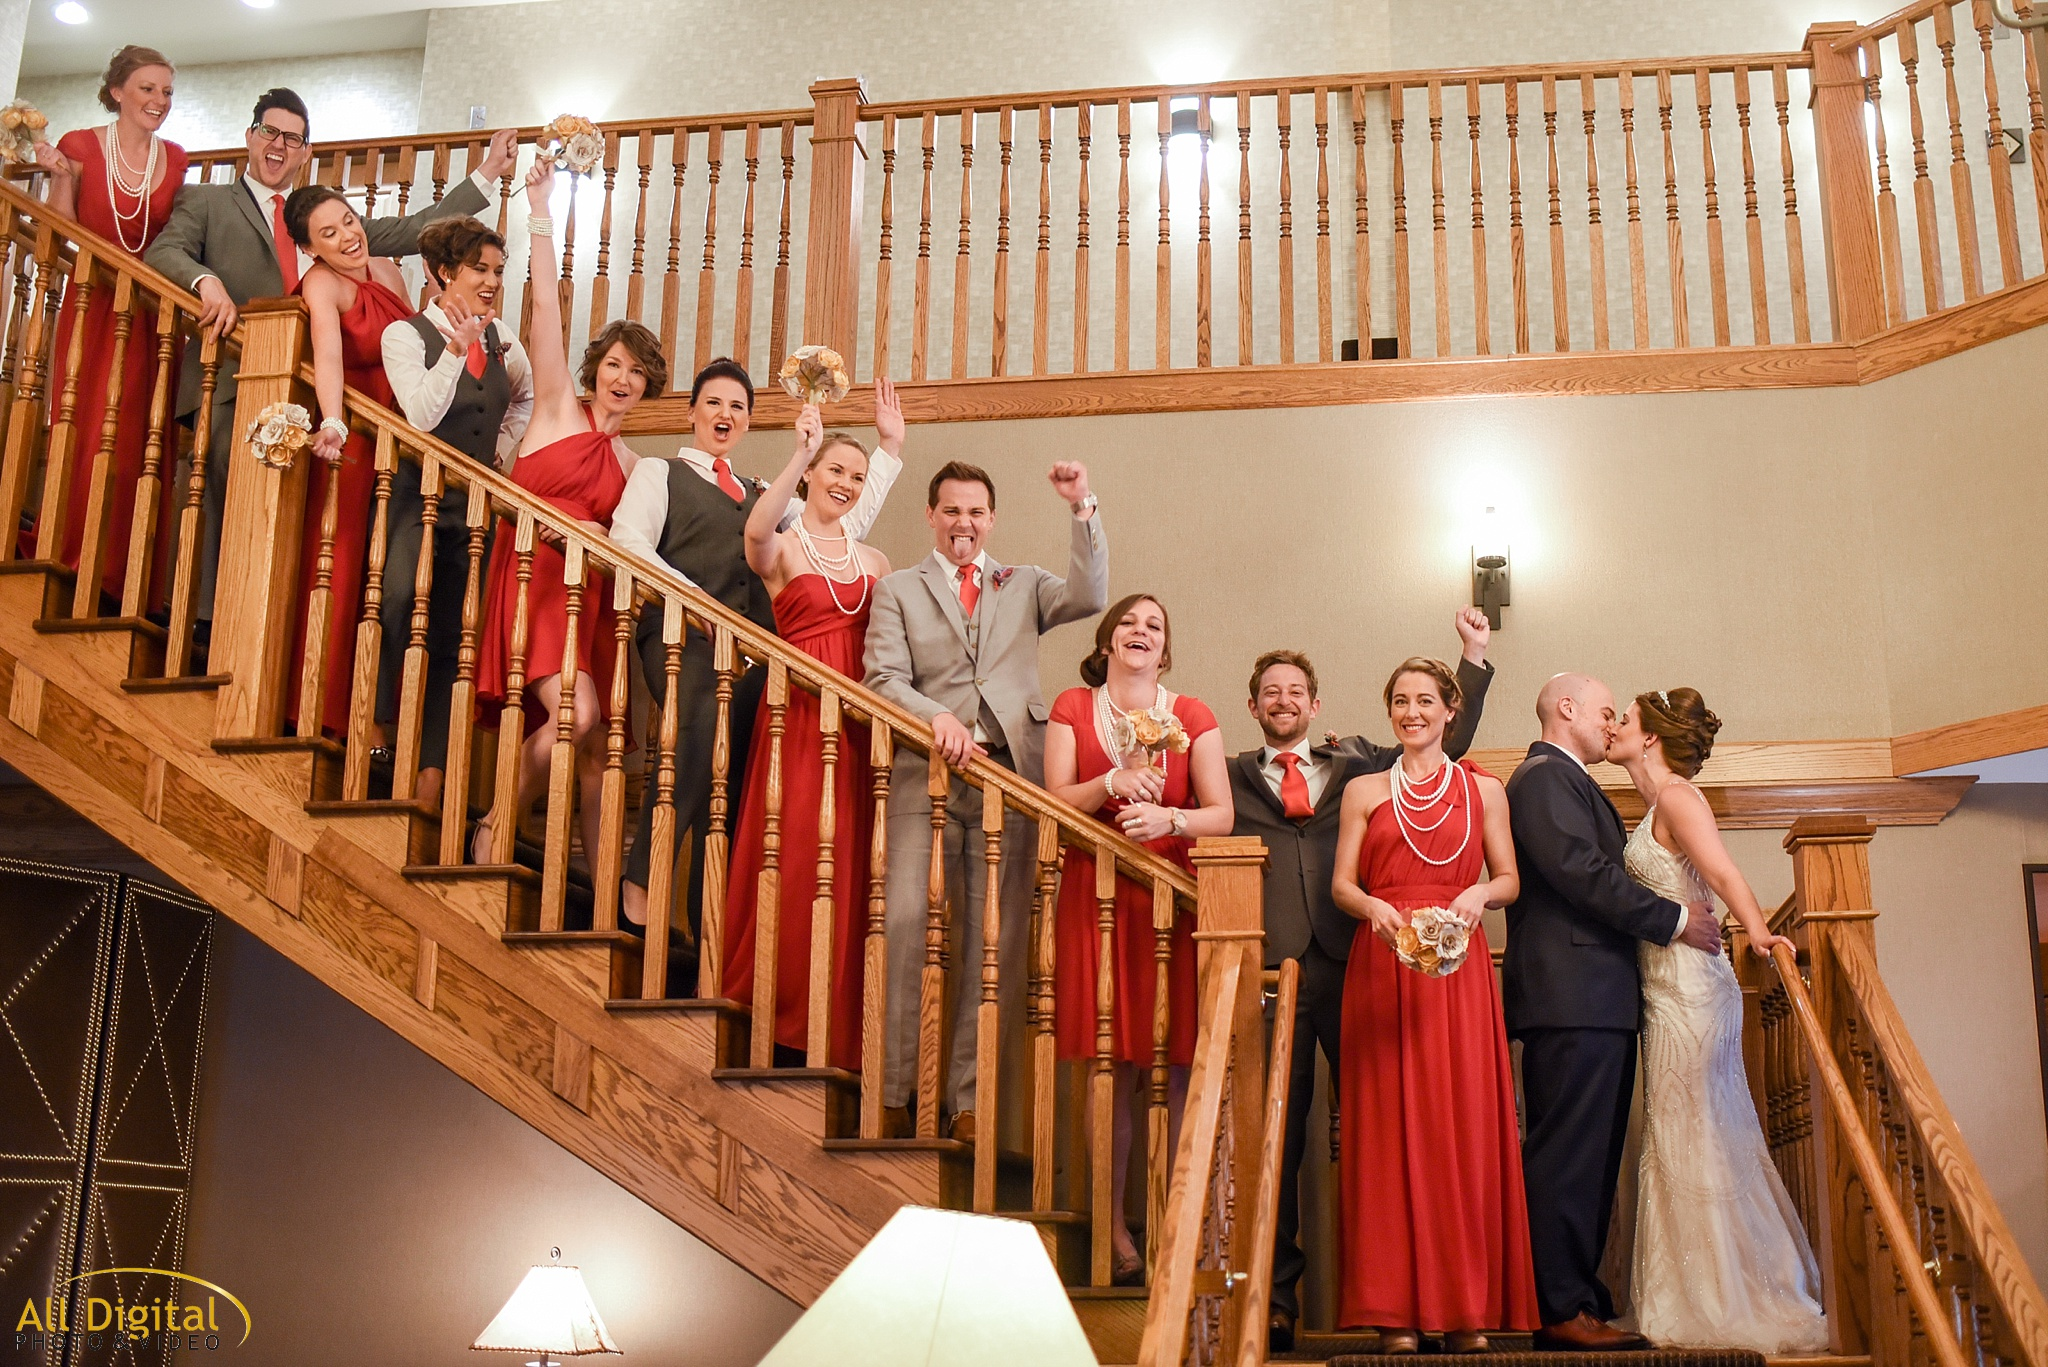 Bridal Party Photos in the lobby of the Golden Hotel photographed by All Digital Studios.